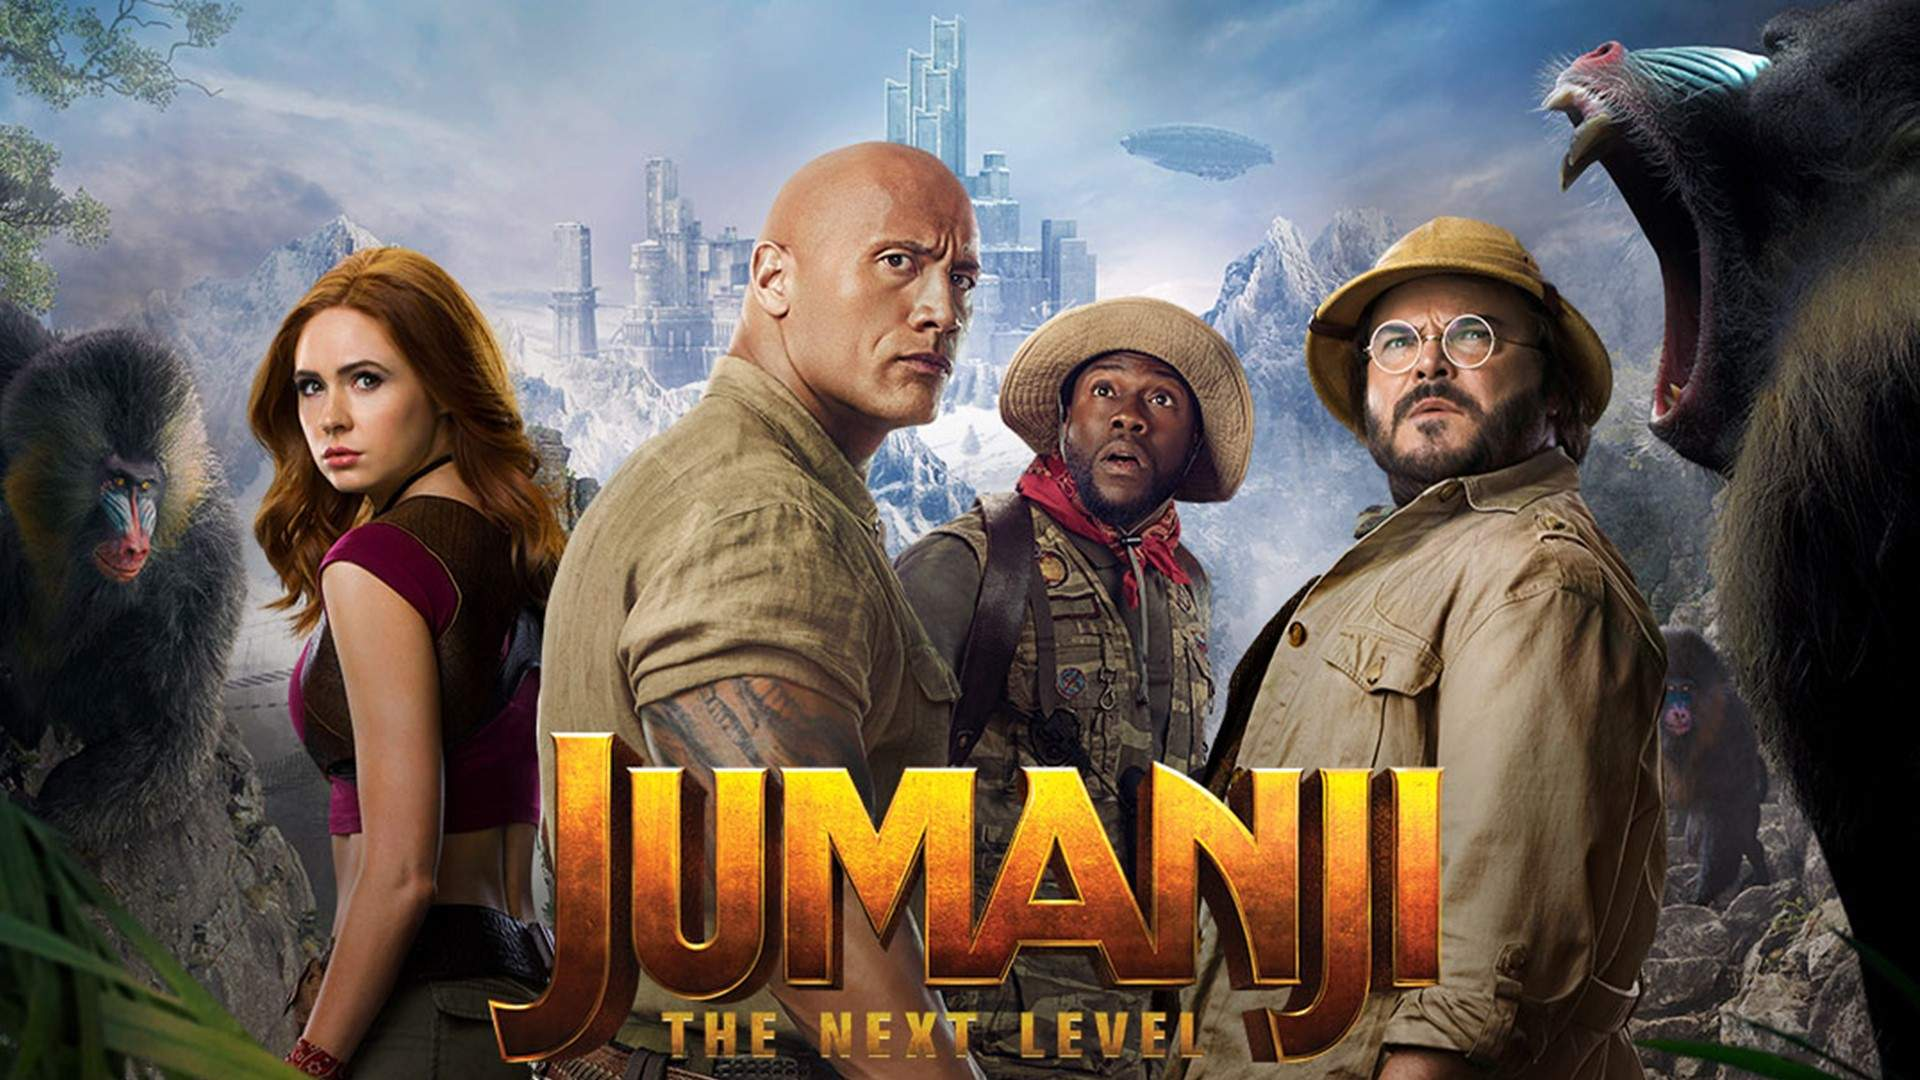 Jumanji: The Next Level (2019) Subtitle (English Srt) Download